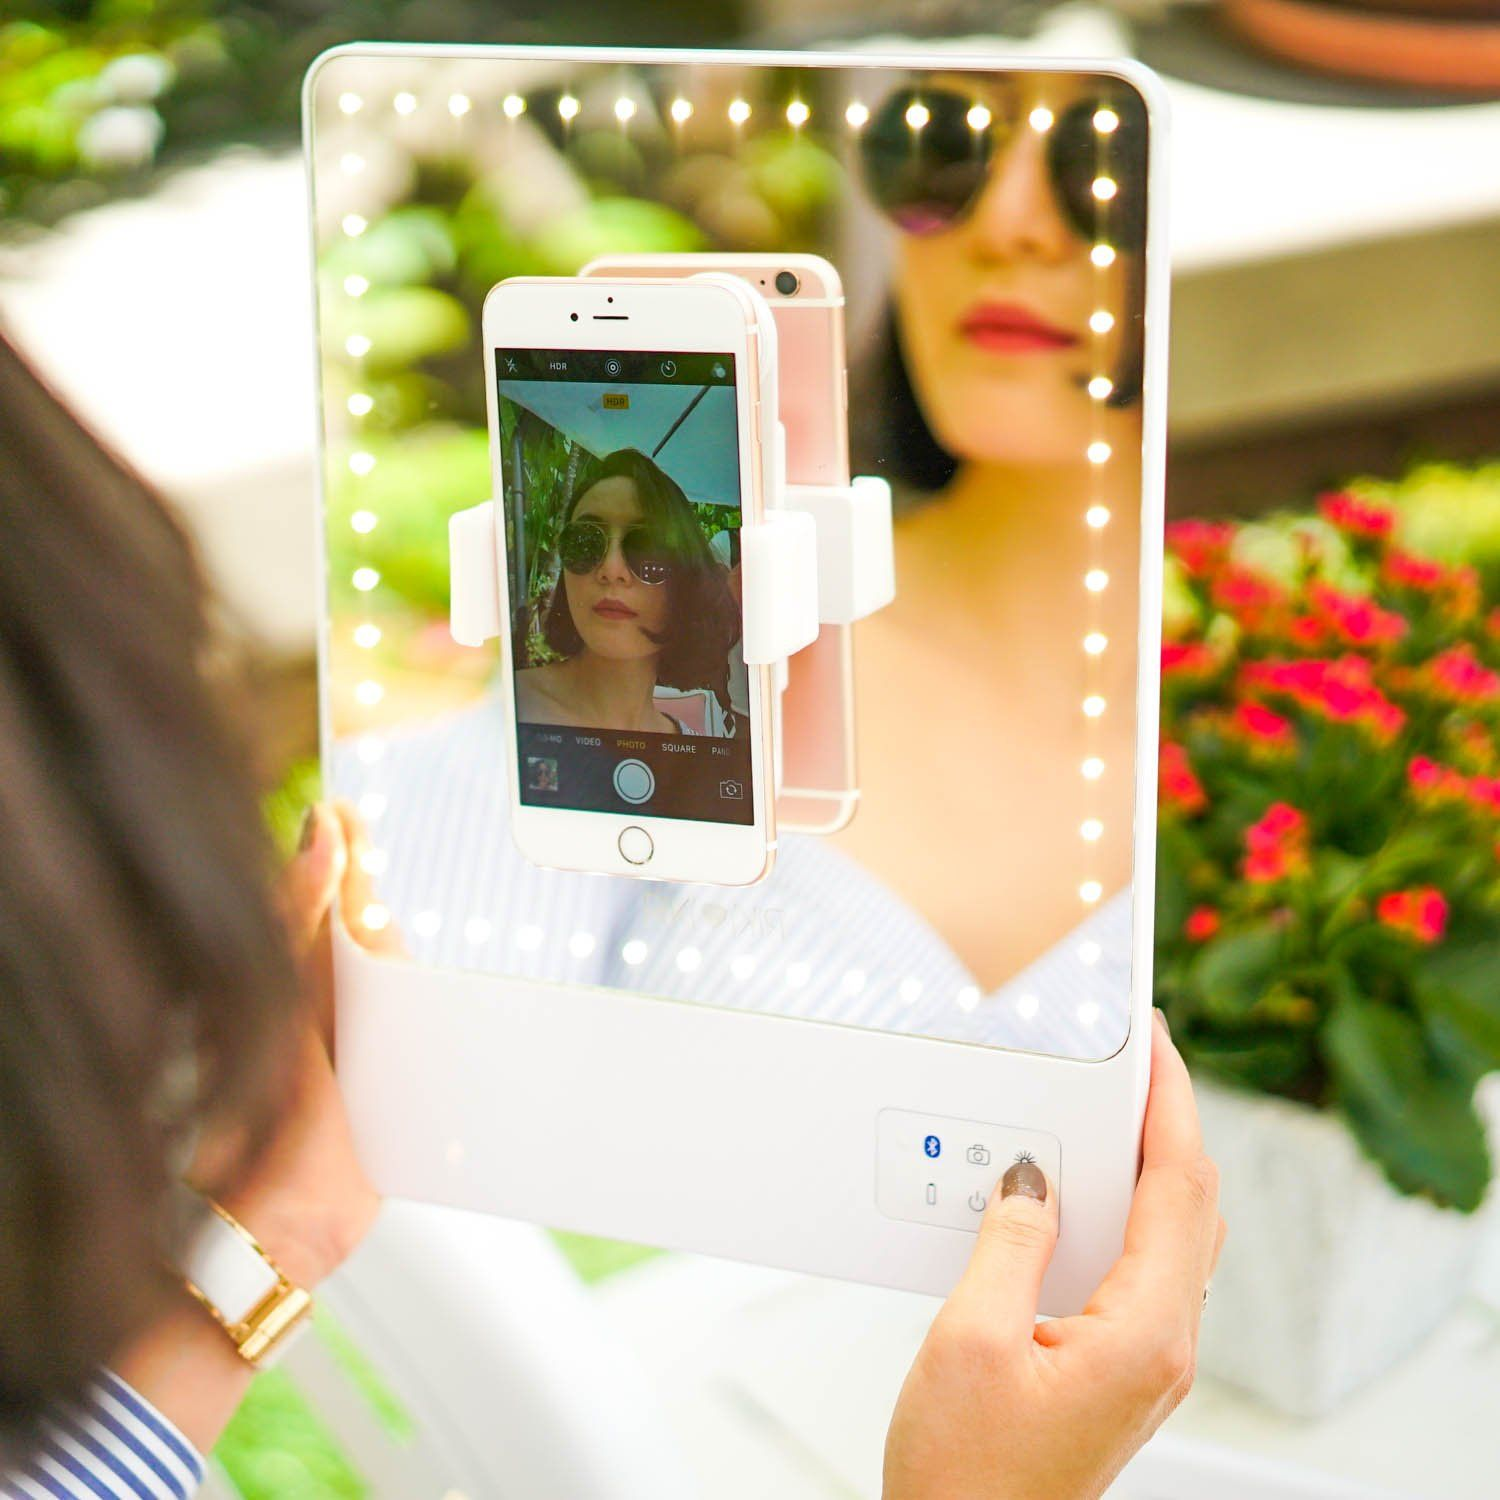 The Riki Skinny Is A Super Bright Mirror Using Glamcor Technology To Deliver Performance Never Before Seen I Riki Skinny Mirror Natural Cosmetics Beauty Mirror